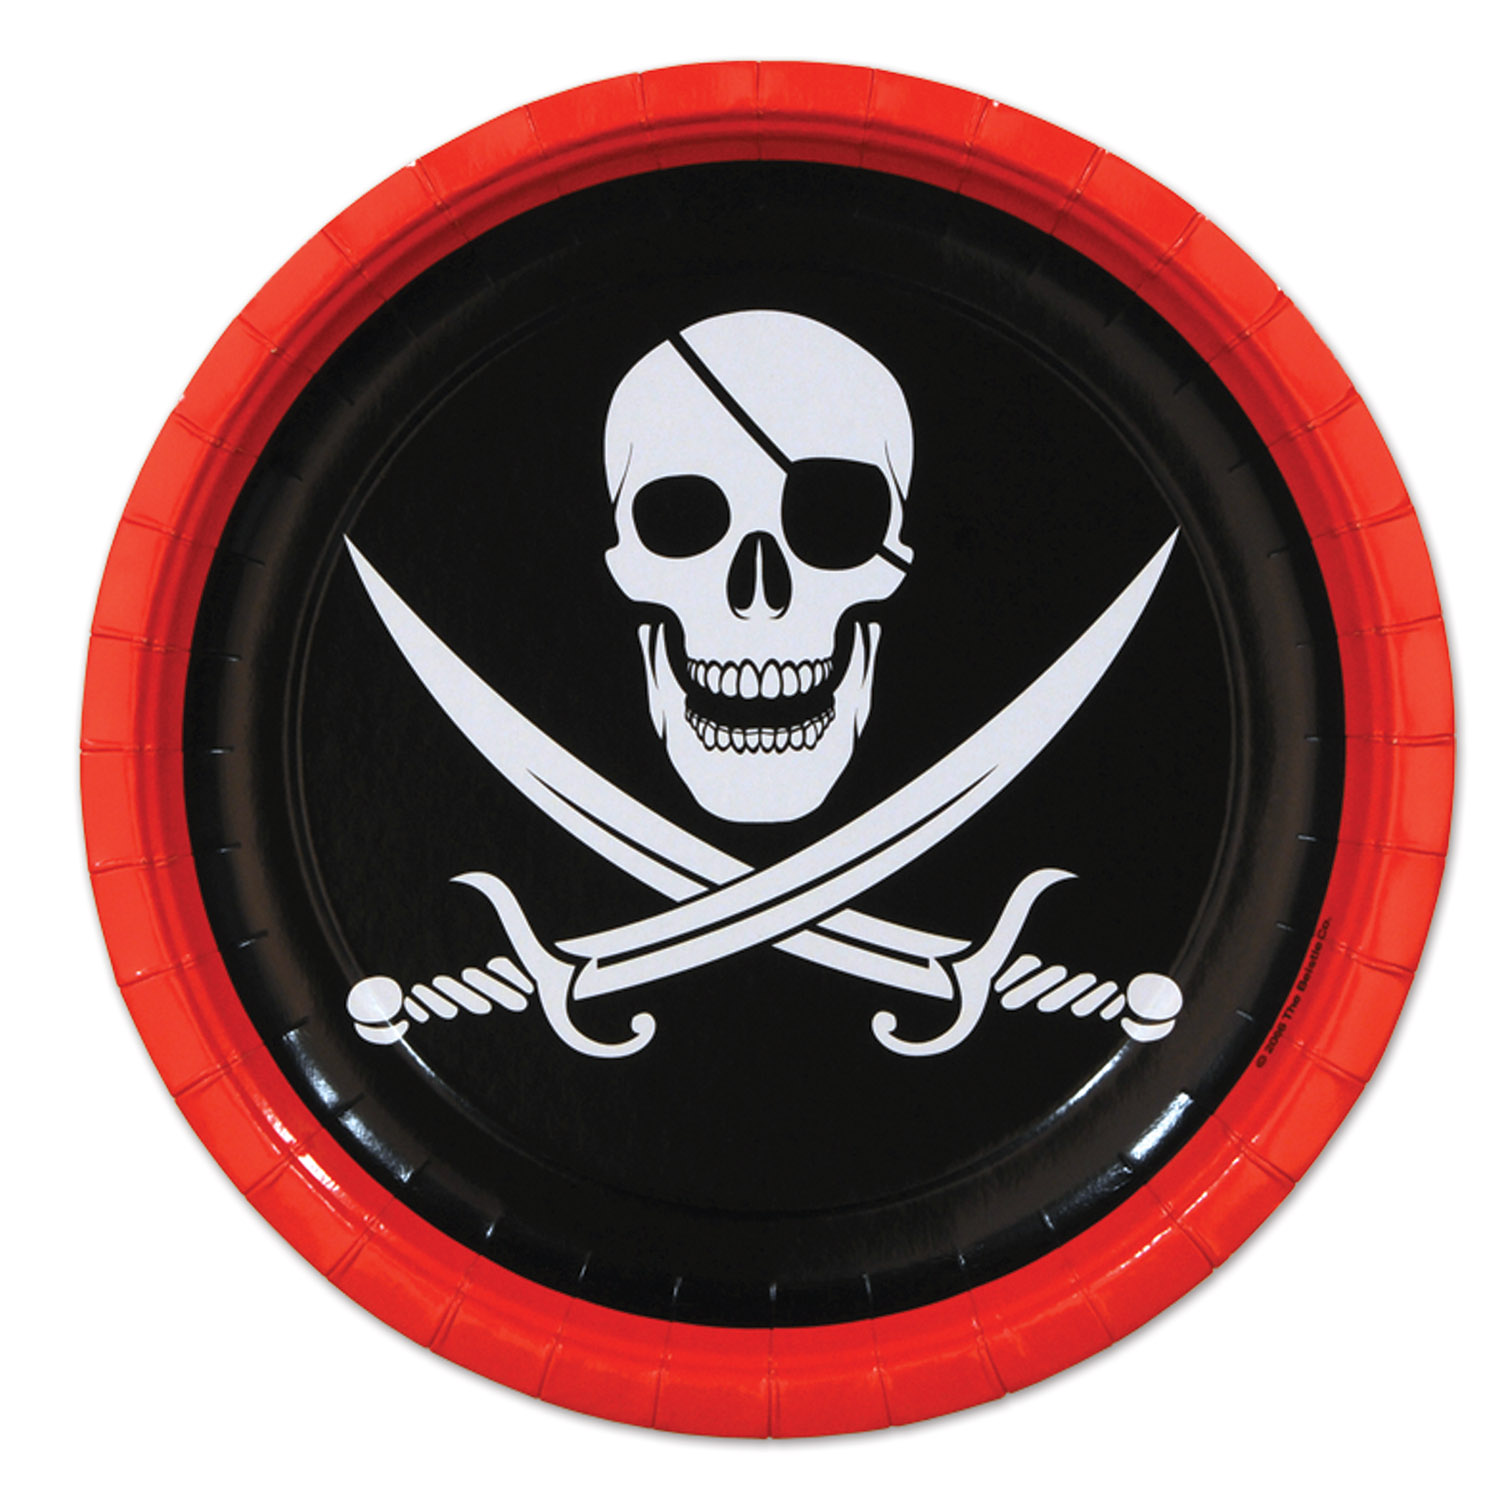 Pirate Party Paper Plates - 8 Count  sc 1 st  eBay & Pirate Party Paper Plates - 8 Count 34689580041 | eBay